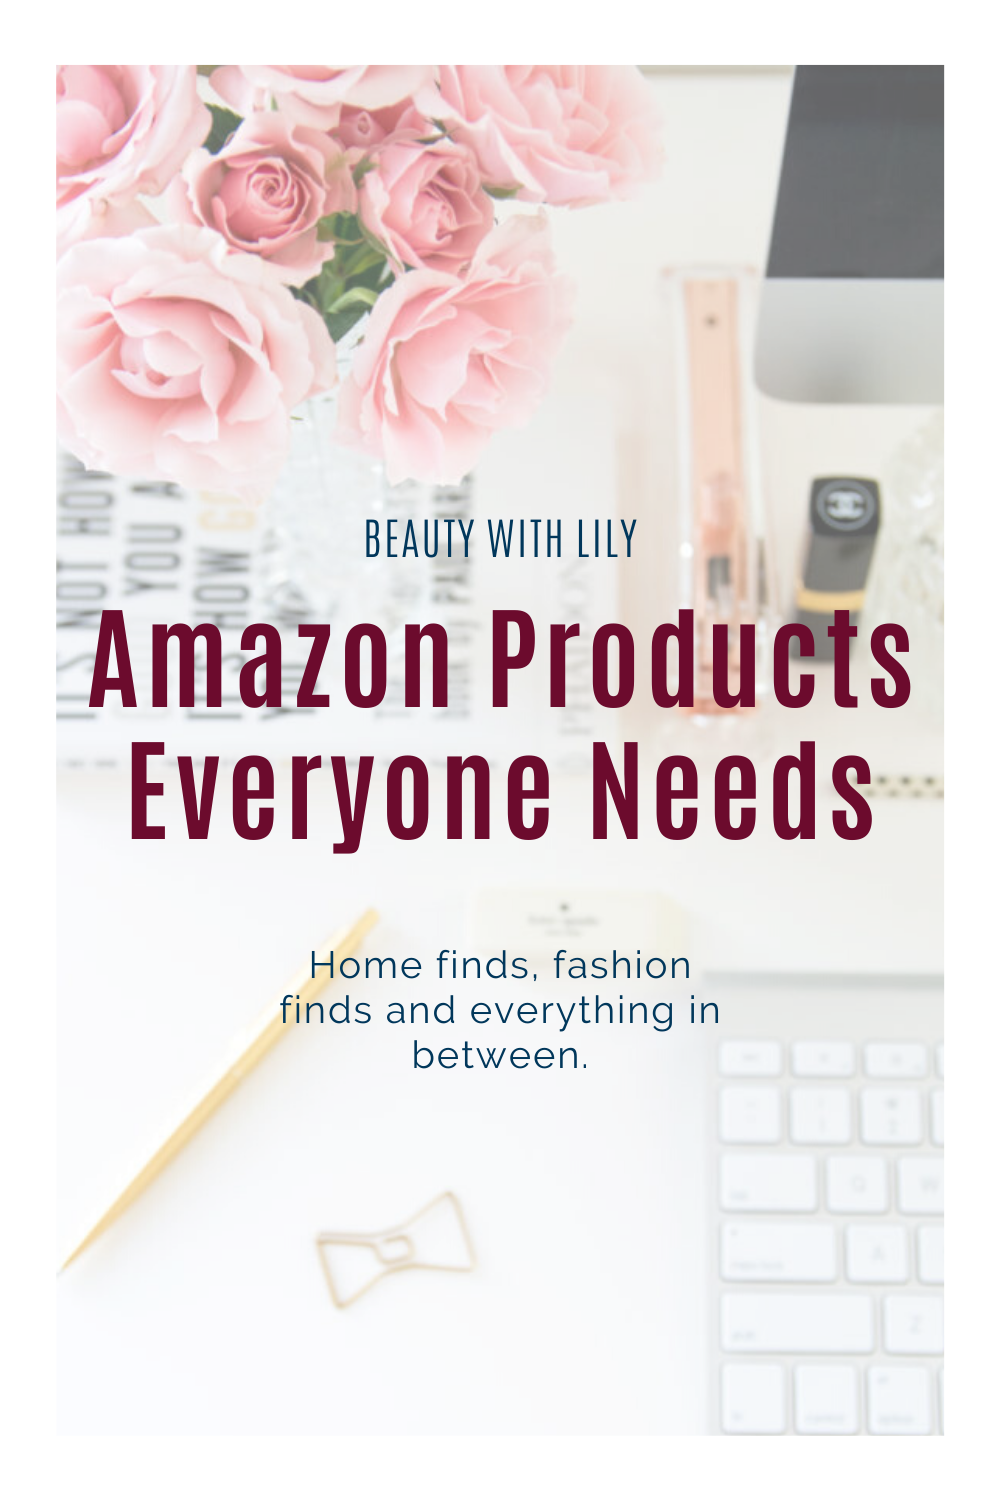 Current Amazon Favorites // Amazon Products Everyone Needs // Affordable Amazon Products // Online Shopping // What to Buy on Amazon // Home Decor // Organizational Kitchen Items // Pantry Organizational Items // Amazon Must Haves // Amazon Finds // Amazon Things To Buy | Beauty With Lily #amazonfinds #amazonfavorites #amazonmusthaves